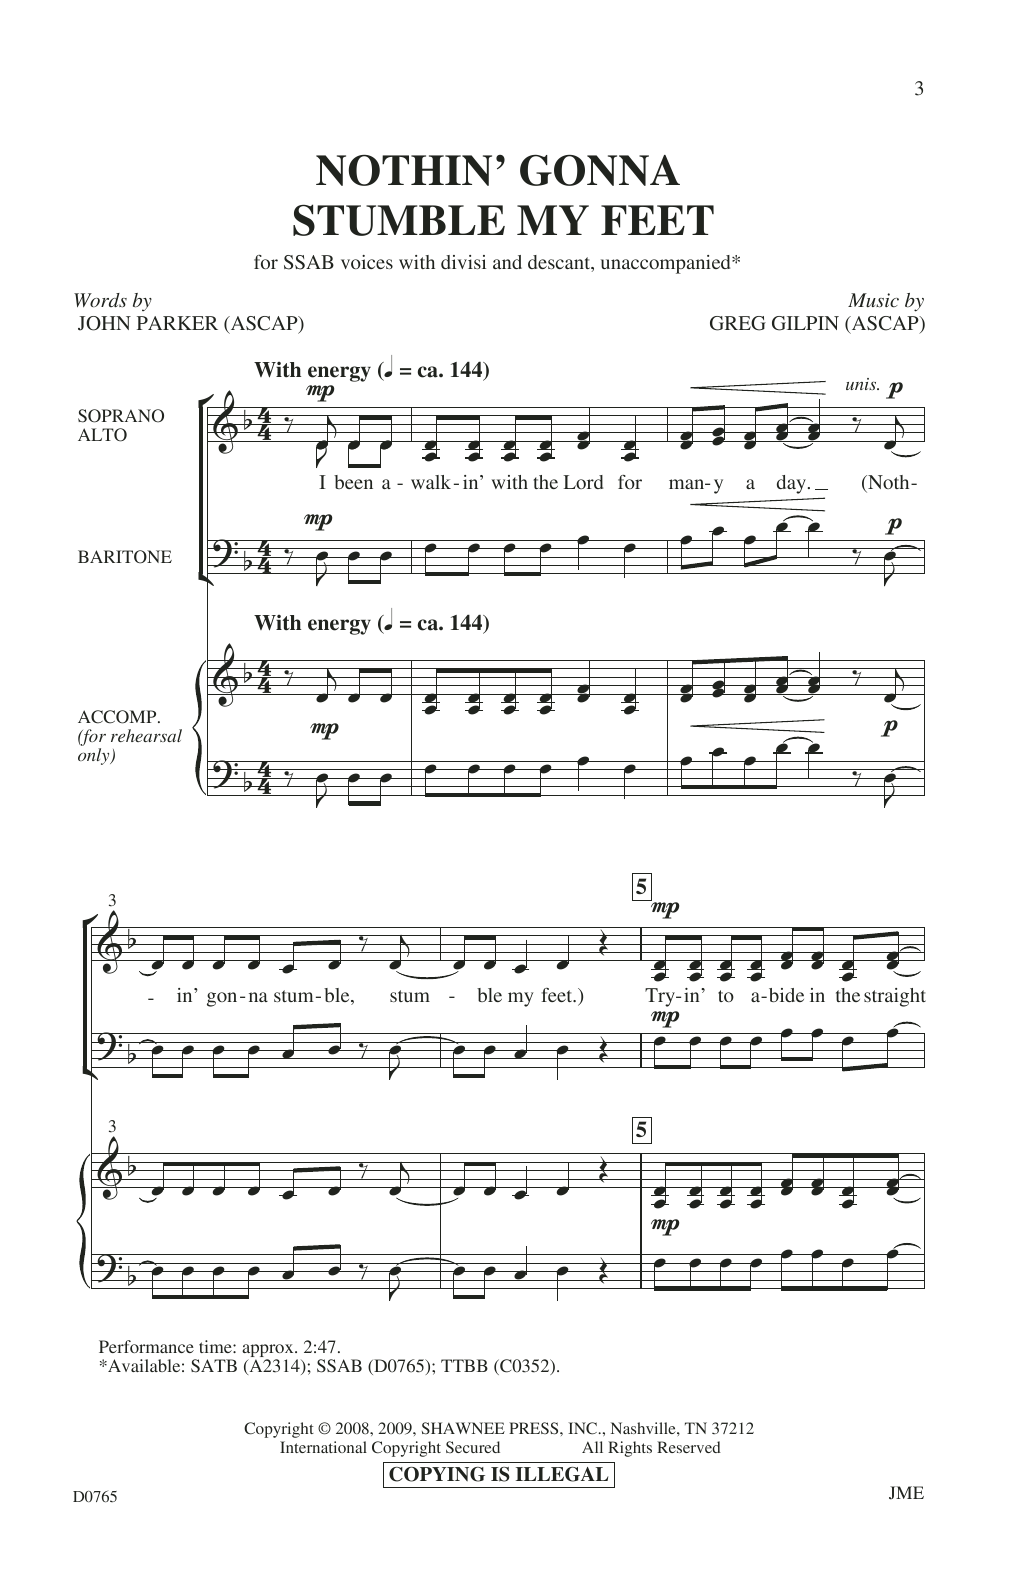 Nothin' Gonna Stumble My Feet Sheet Music